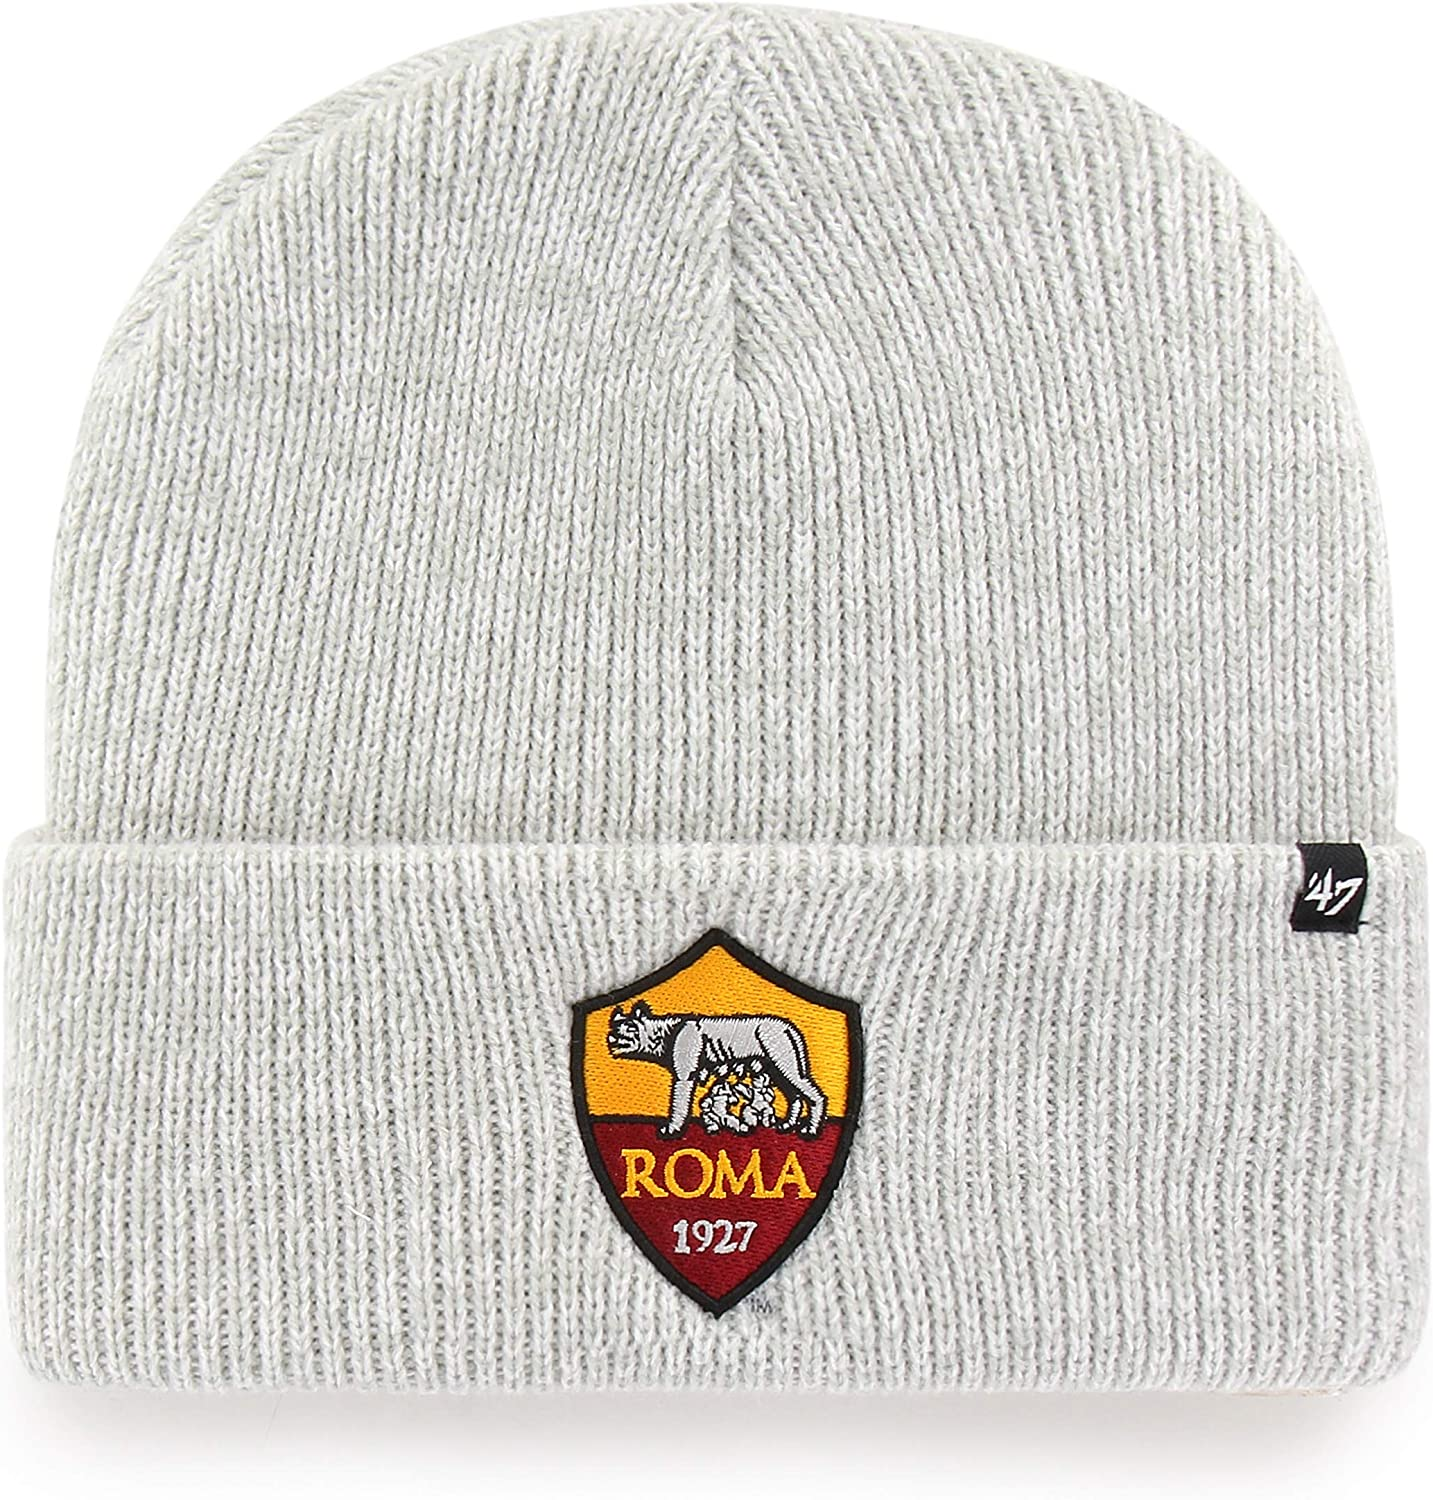 Adulto Knitted Hat Unisex Brain Freeze Cuff Knit AS Roma